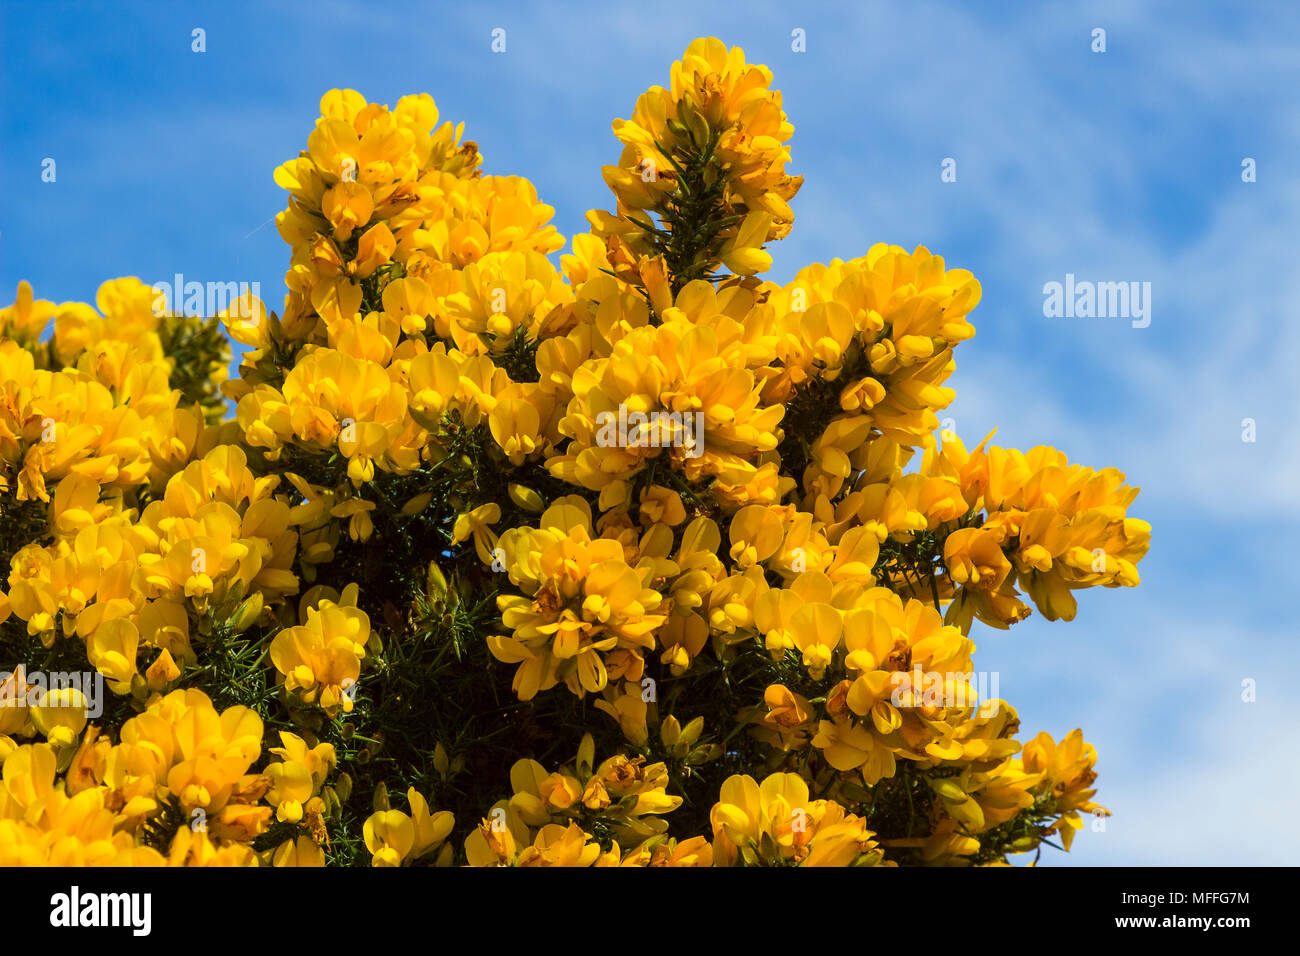 Gorse bush yellow flowers stock photos gorse bush yellow flowers yellow flowers on a common whin bush or gorse displaying their full spring glory in county mightylinksfo Images